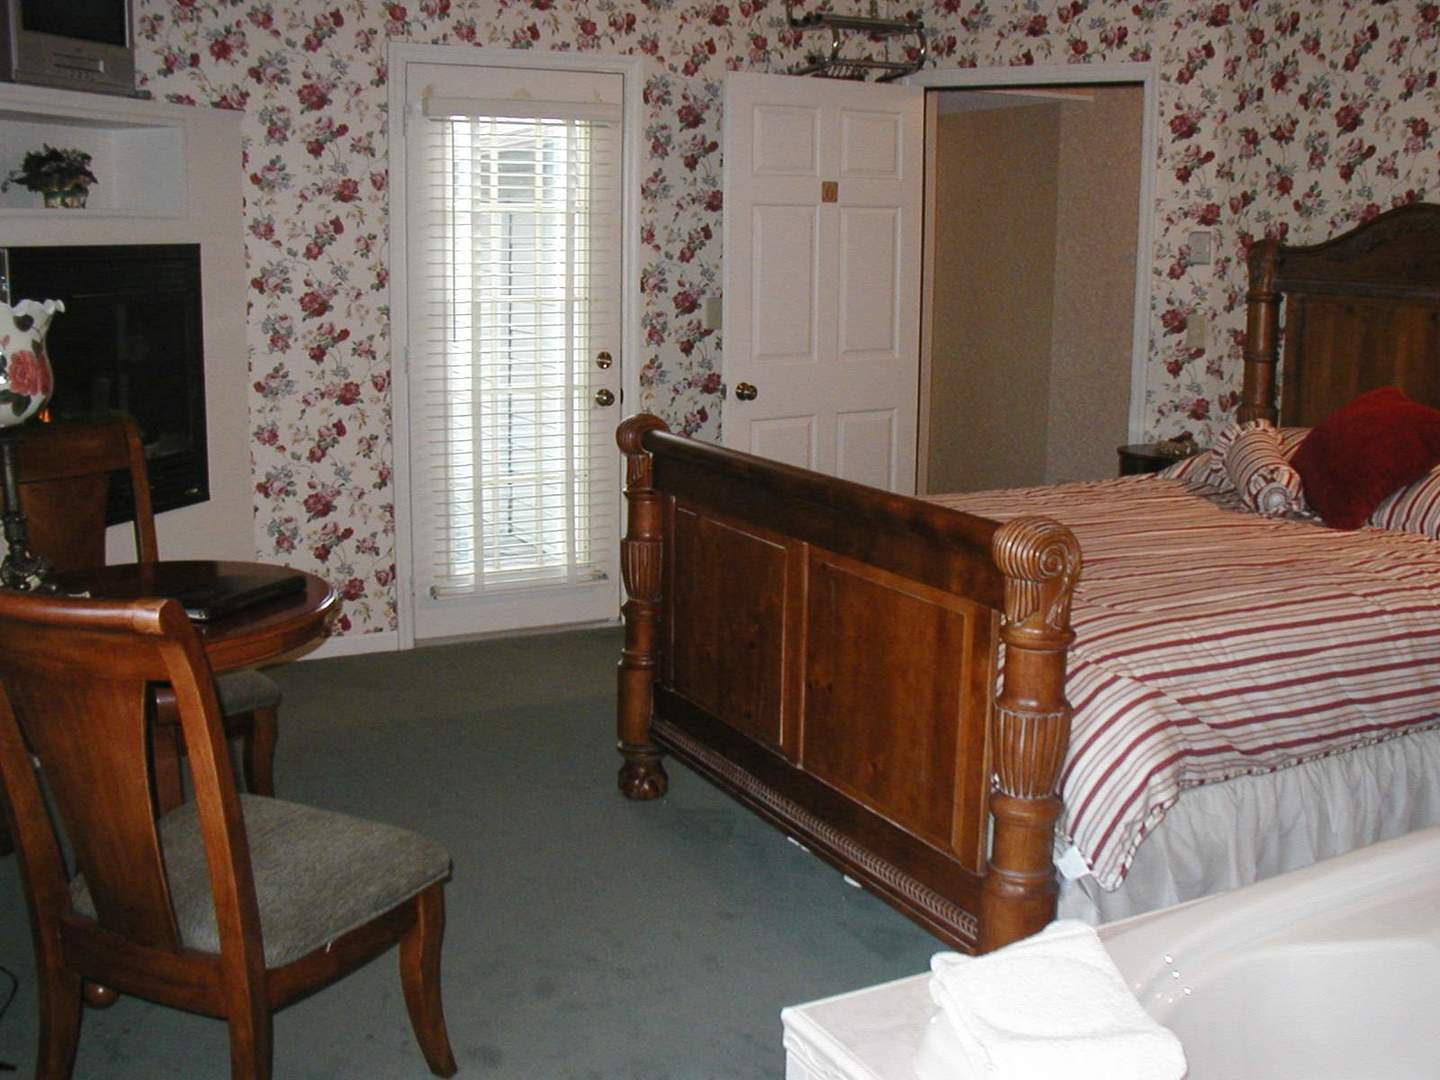 A bedroom with a bed and a chair in a room at Afton House Inn.